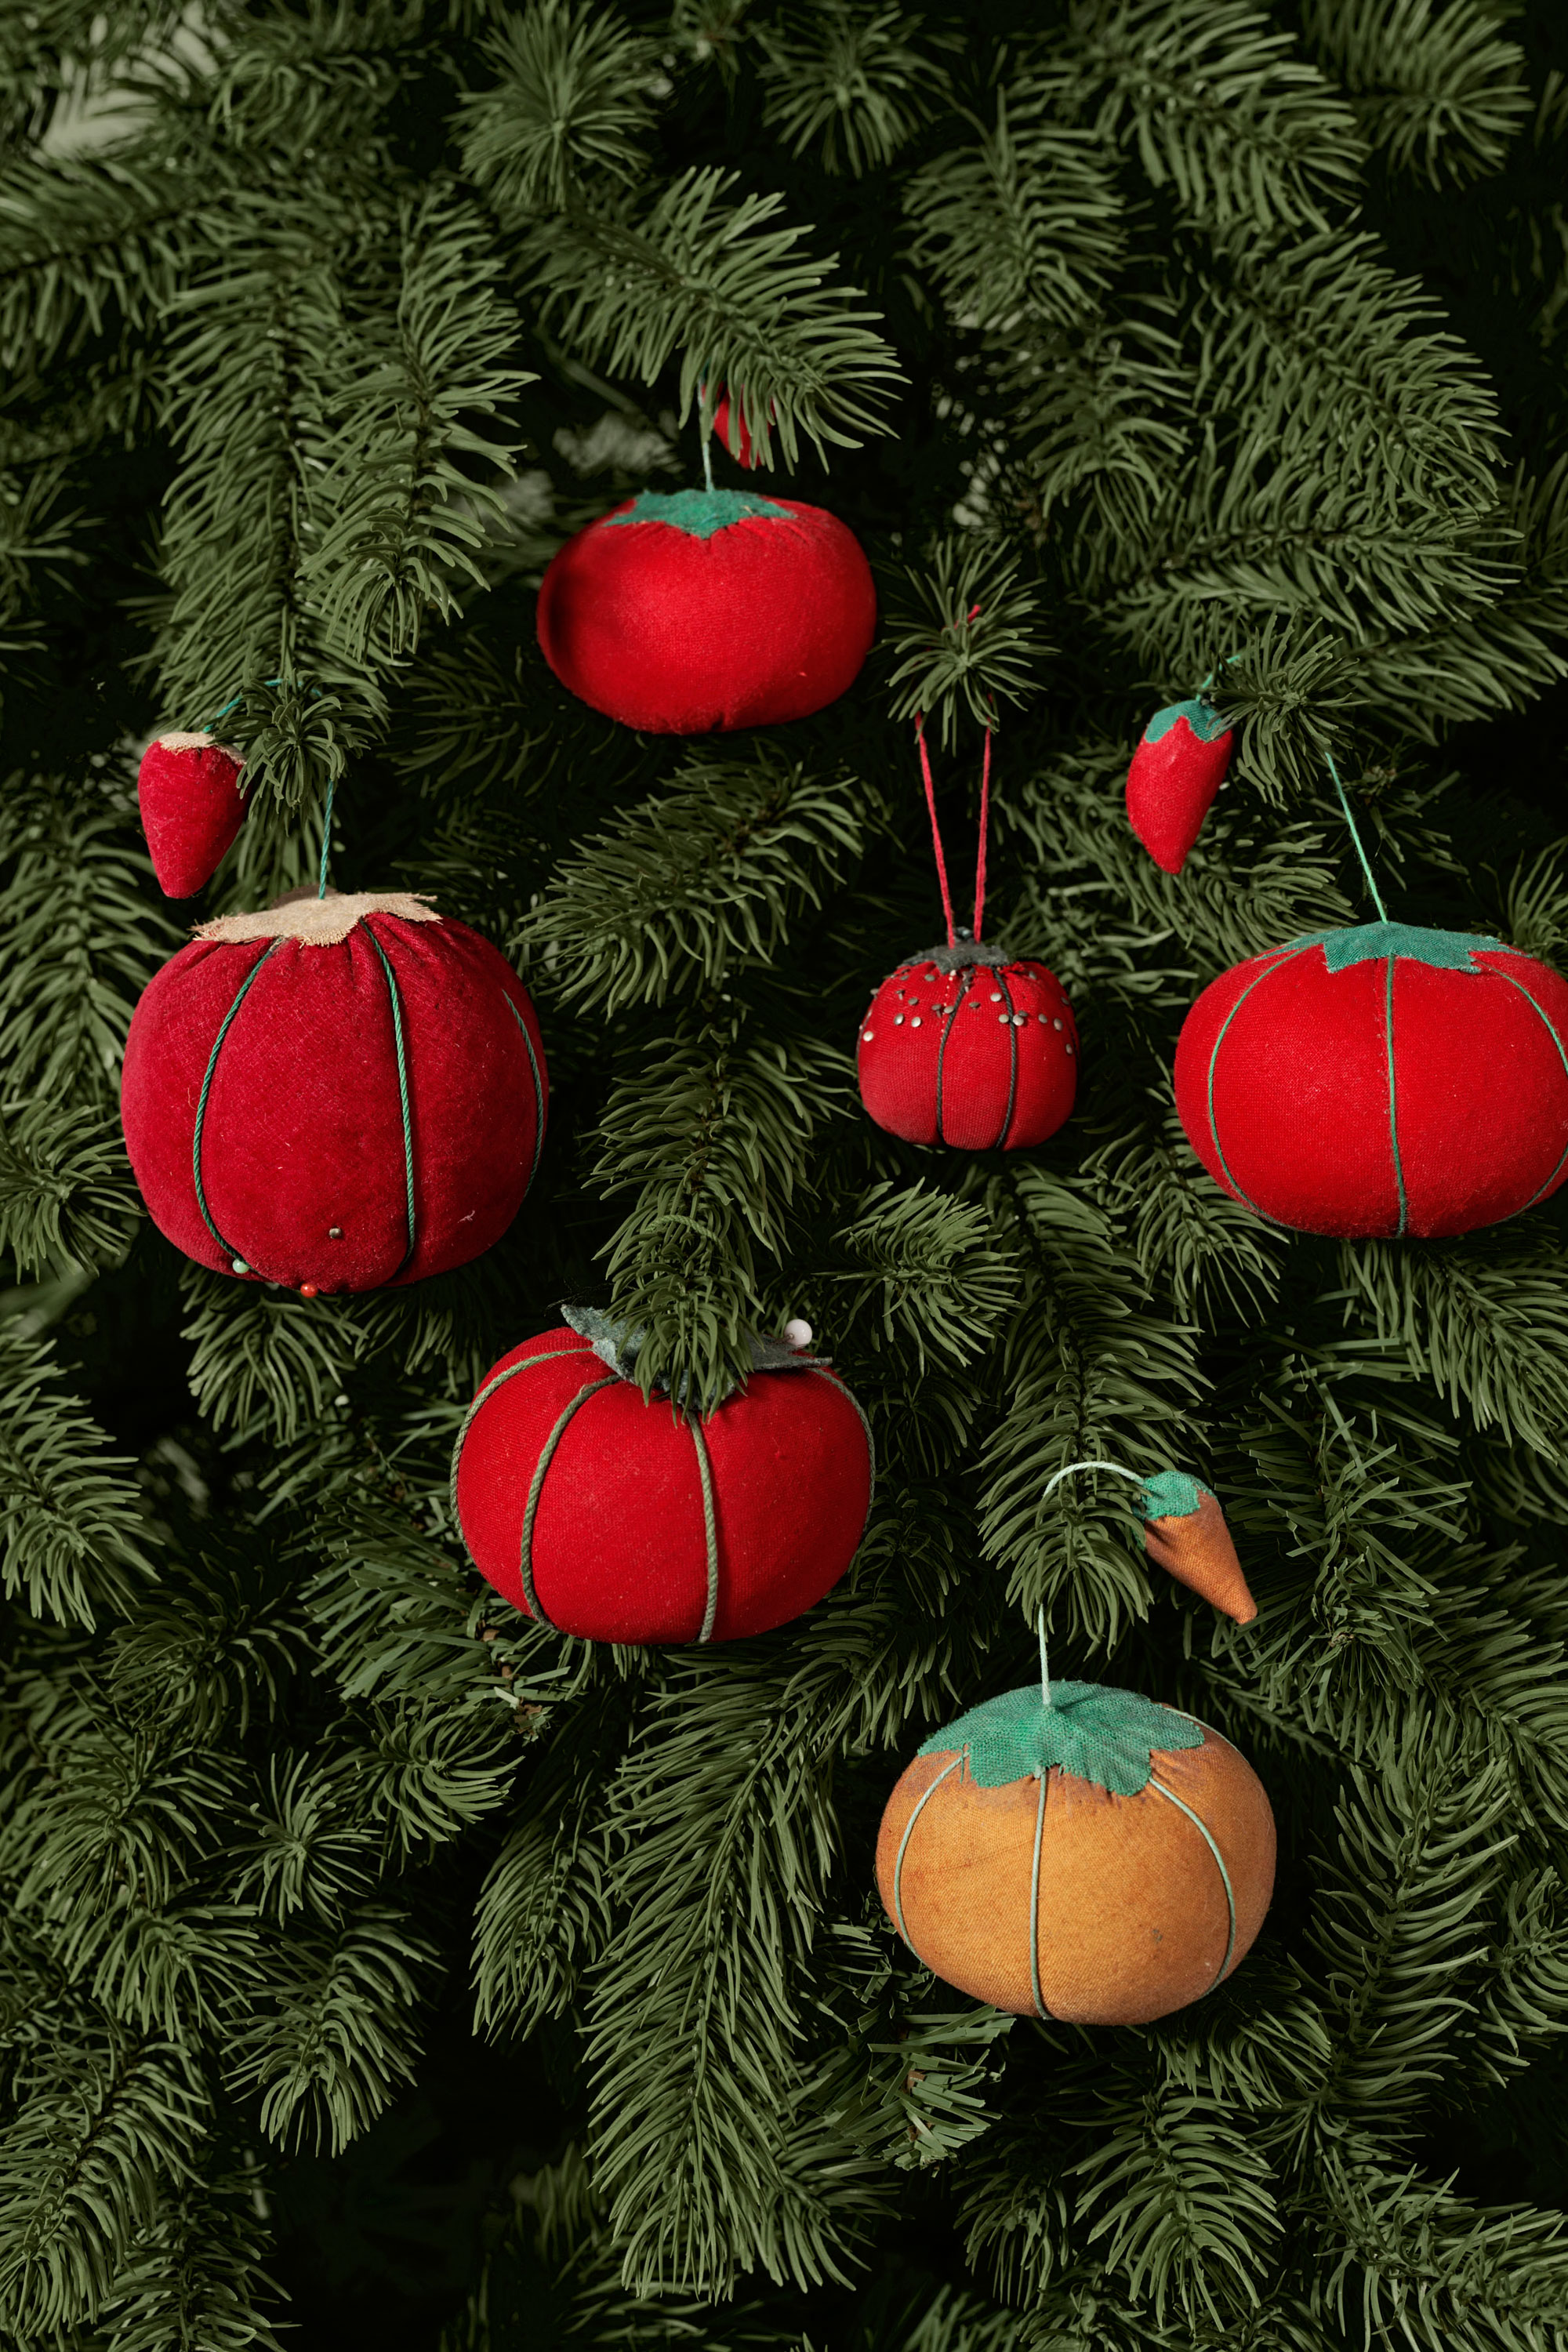 50+ Homemade Christmas Ornaments - DIY Crafts with Christmas Tree ...